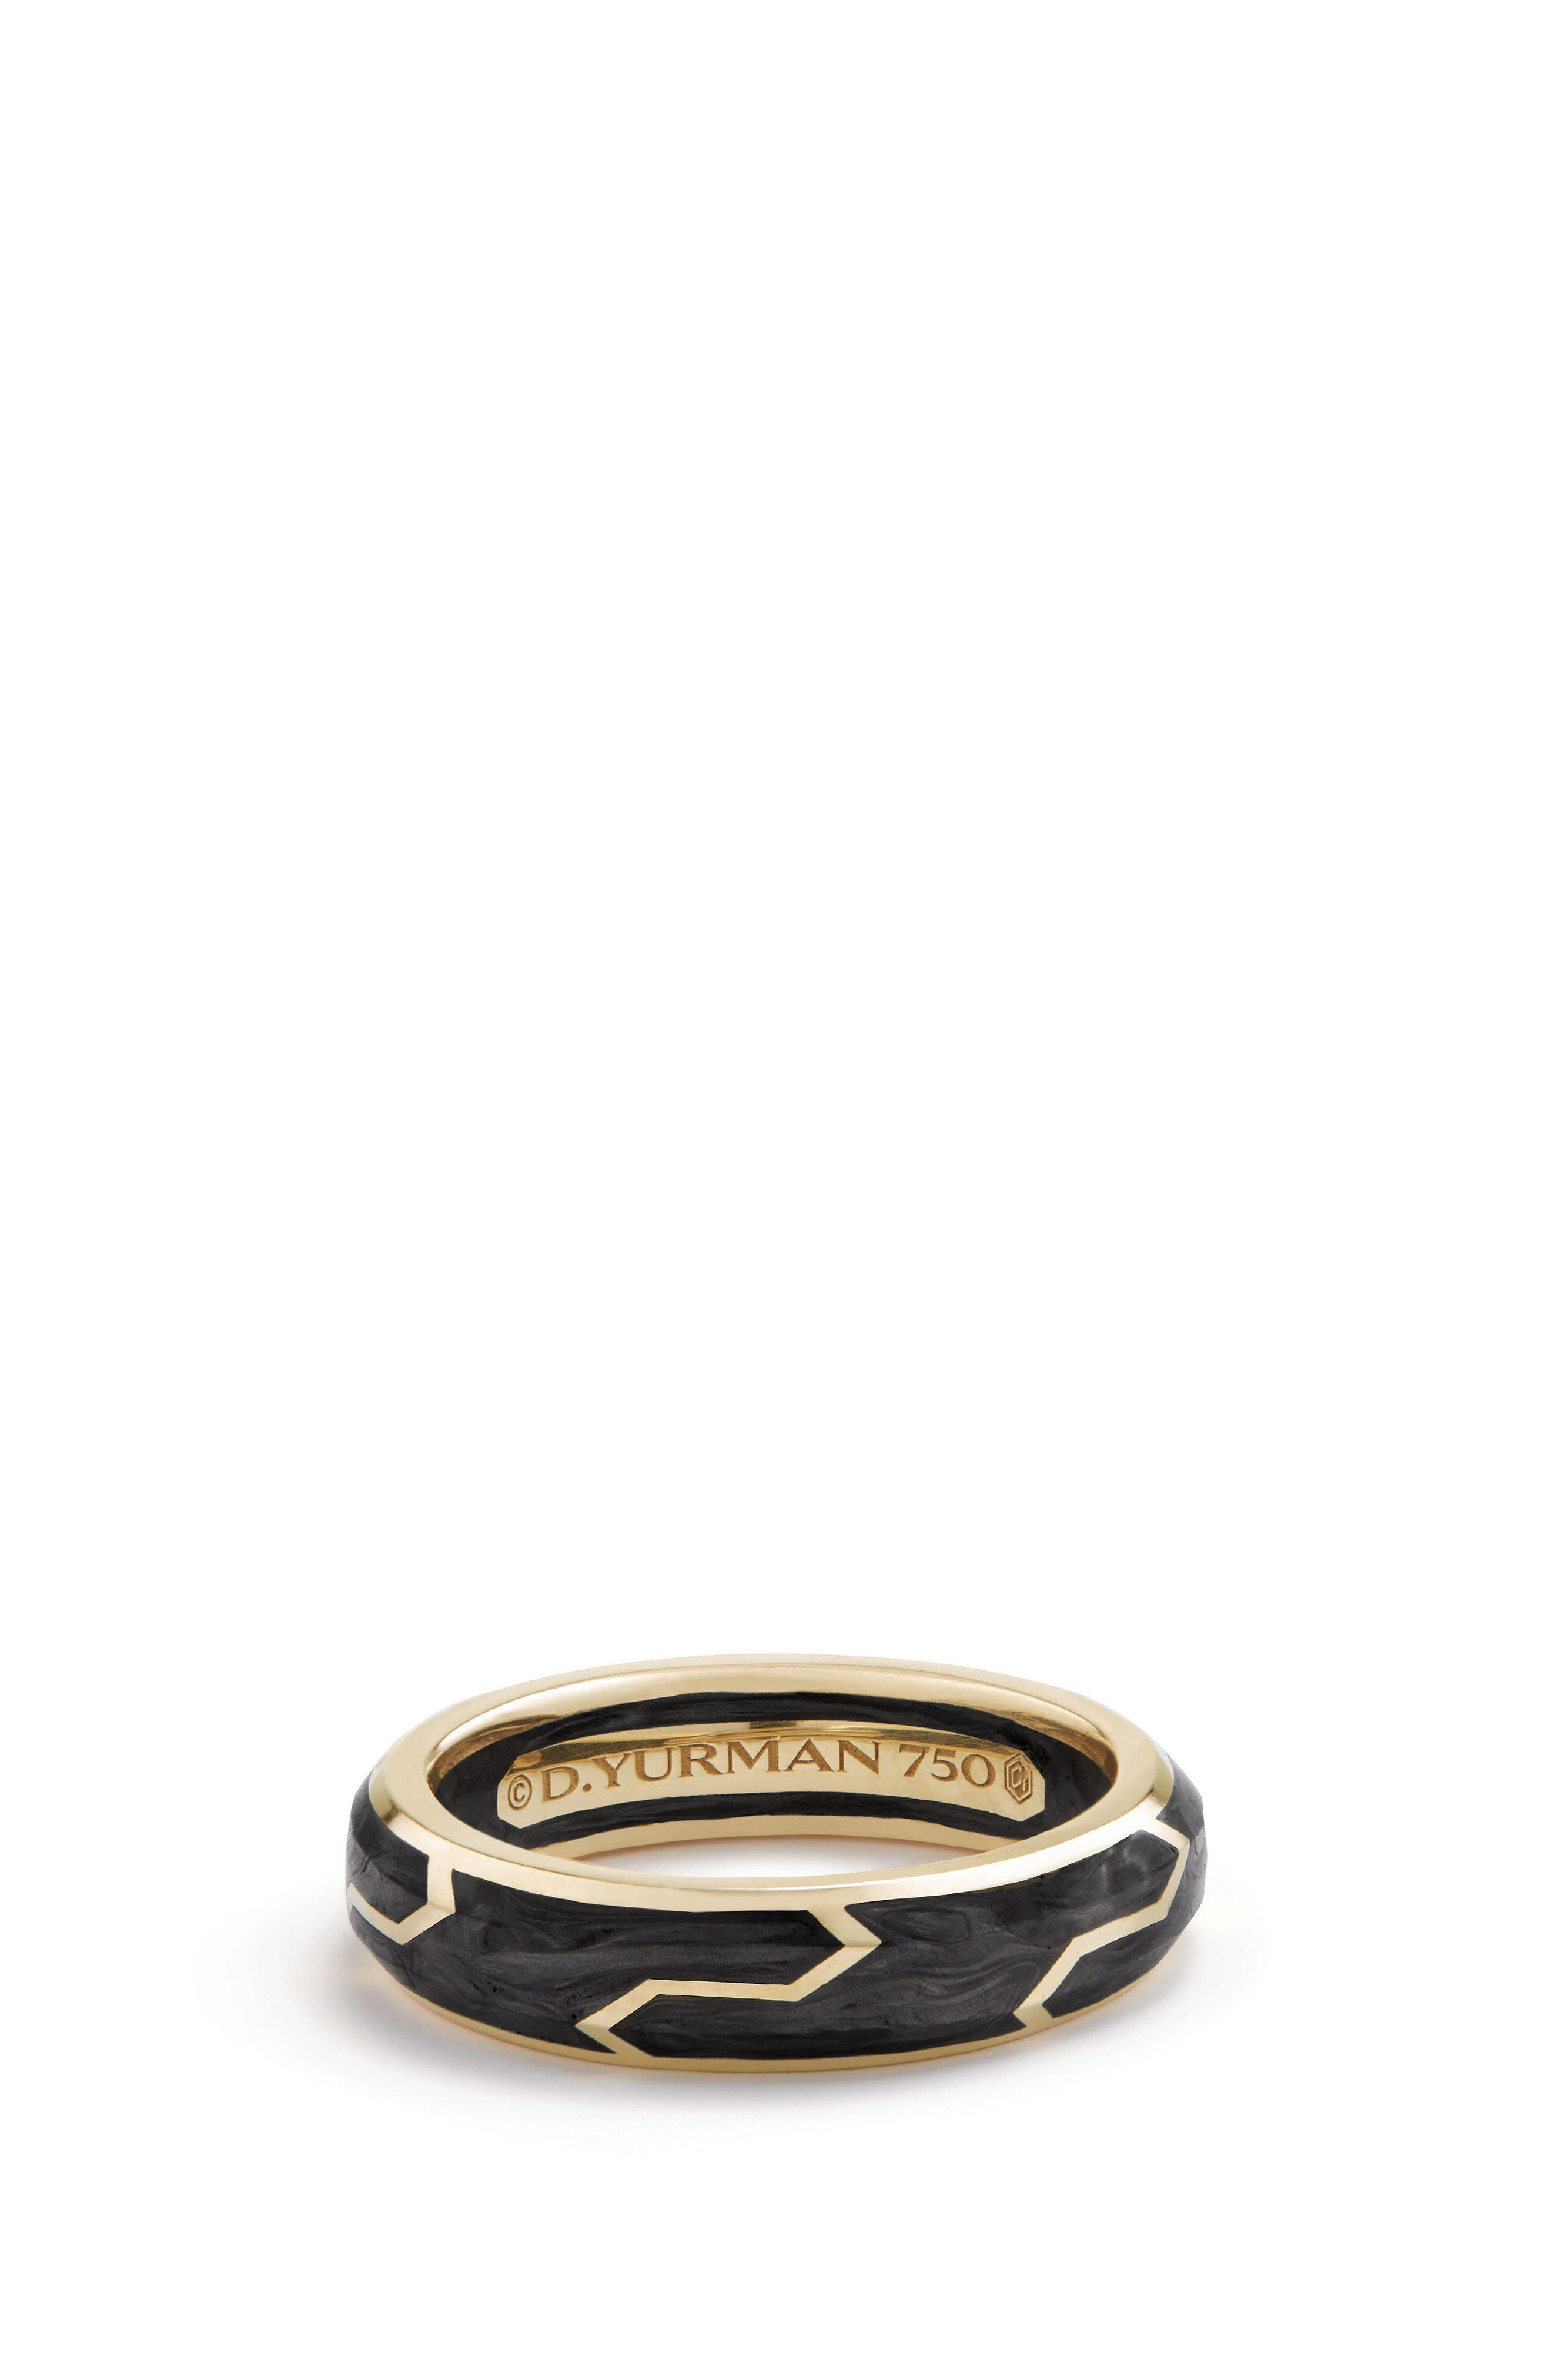 Forged Carbon Band Ring in 18K Gold, 6mm,                         Main,                         color, Forged Carbon